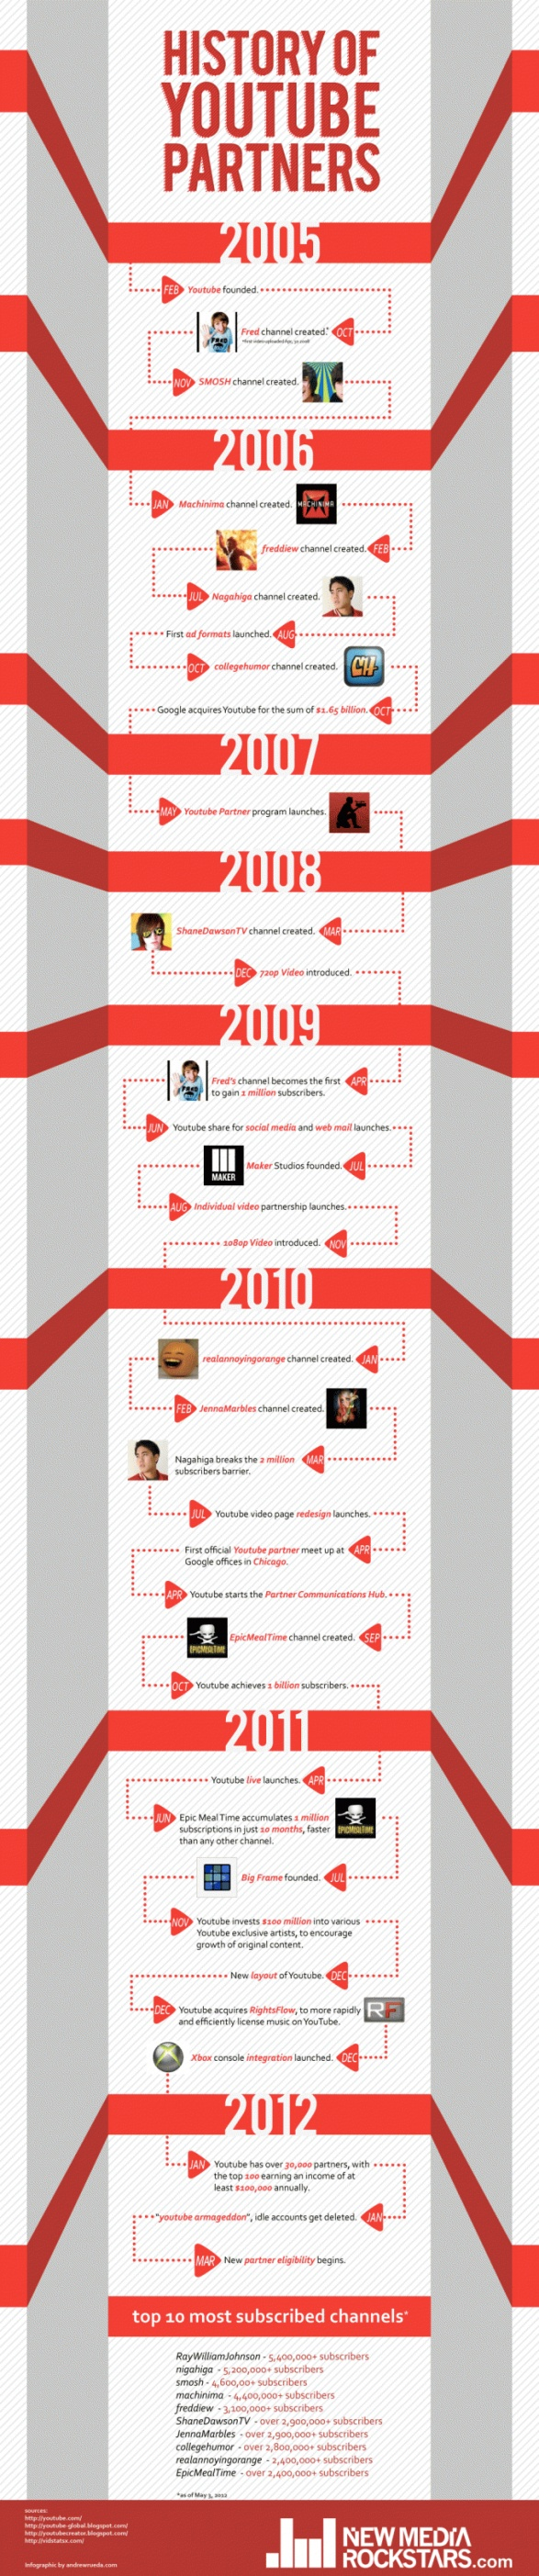 History of Youtube Partners #infographic #socialmedia #in